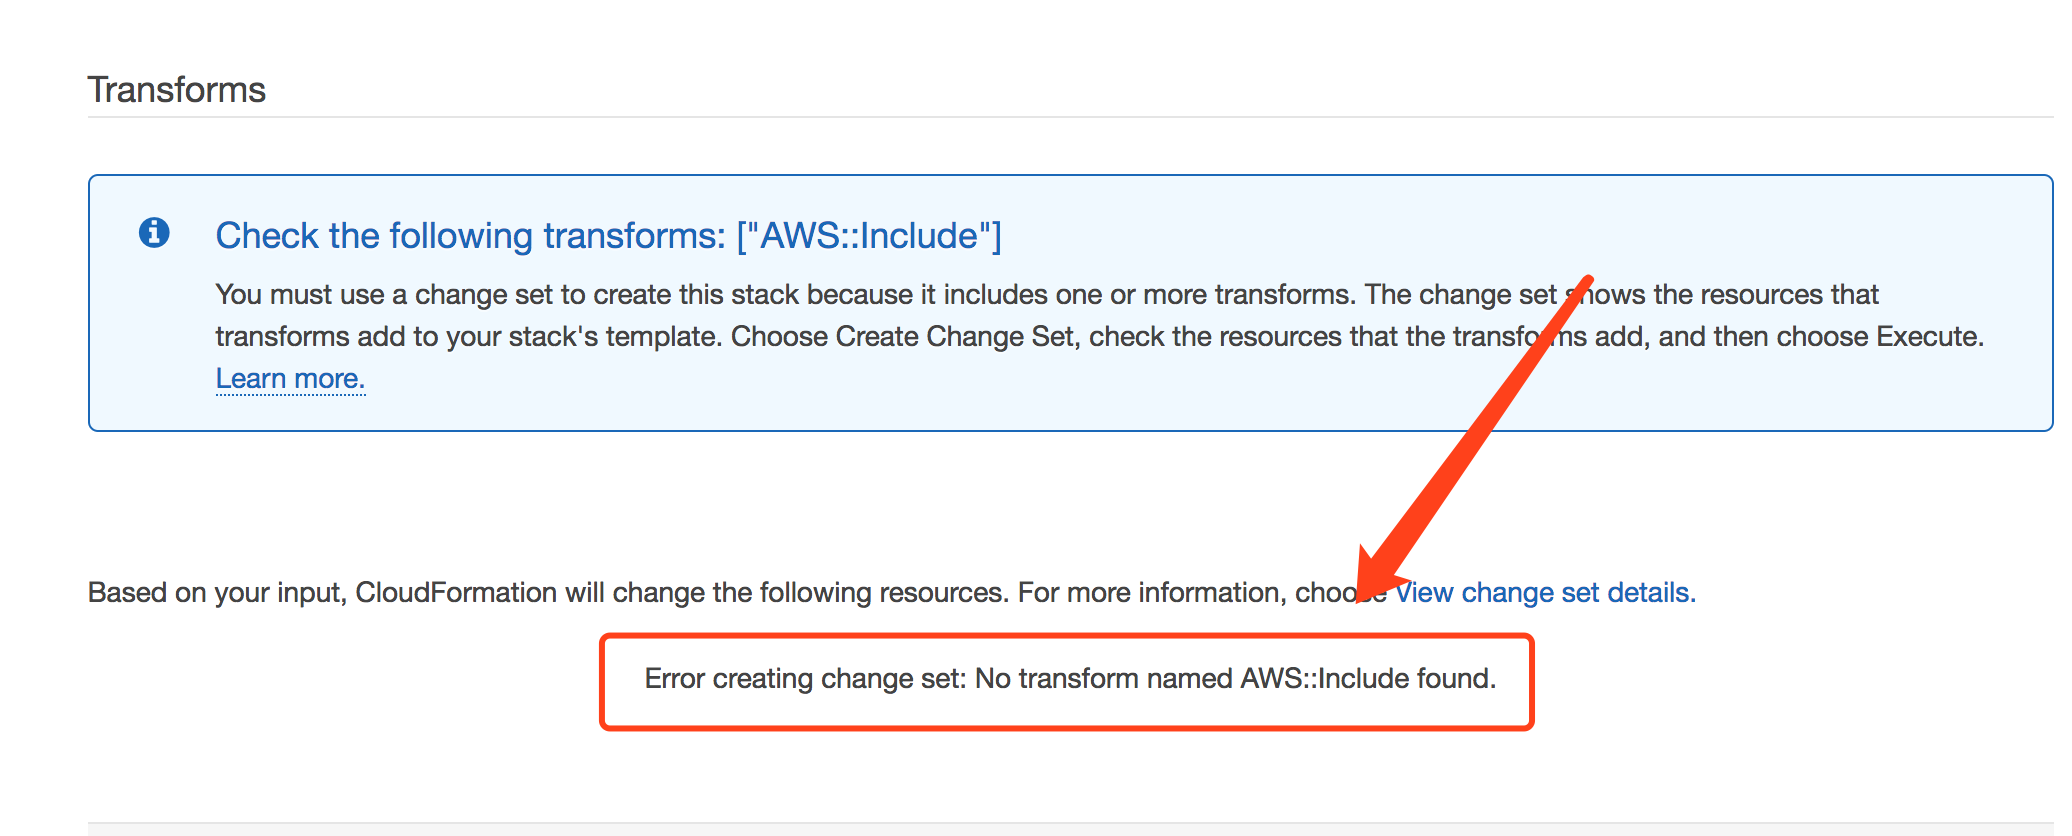 stockholm region cloudformation having issue with AWS